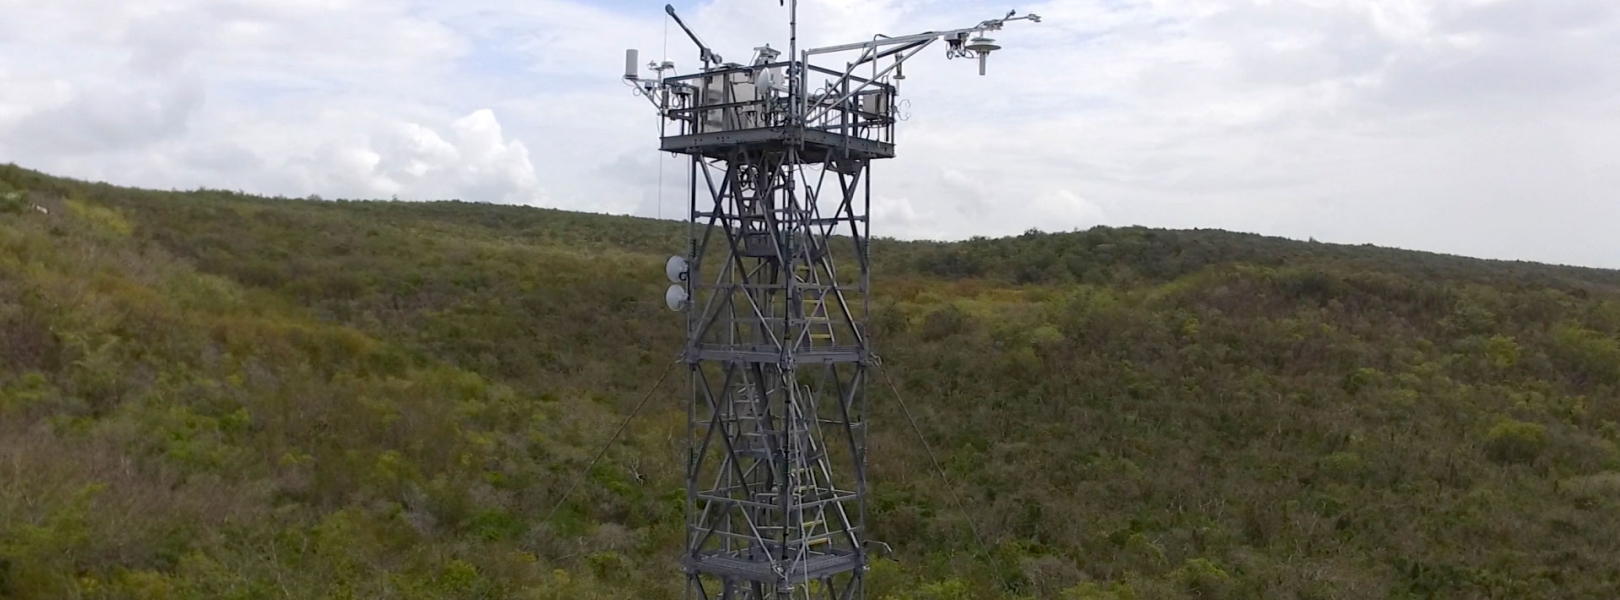 Flux tower at the GUAN field site in Puerto Rico